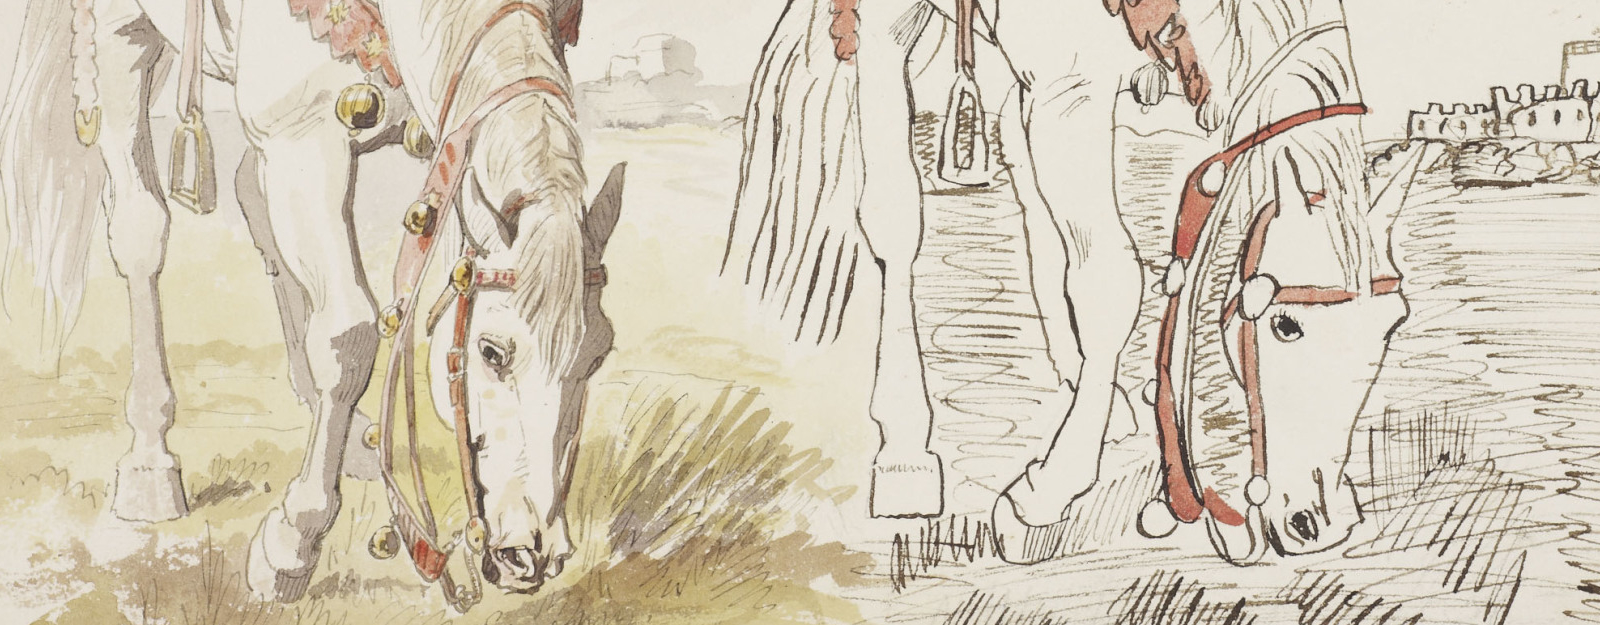 horse sketched by Edward VII